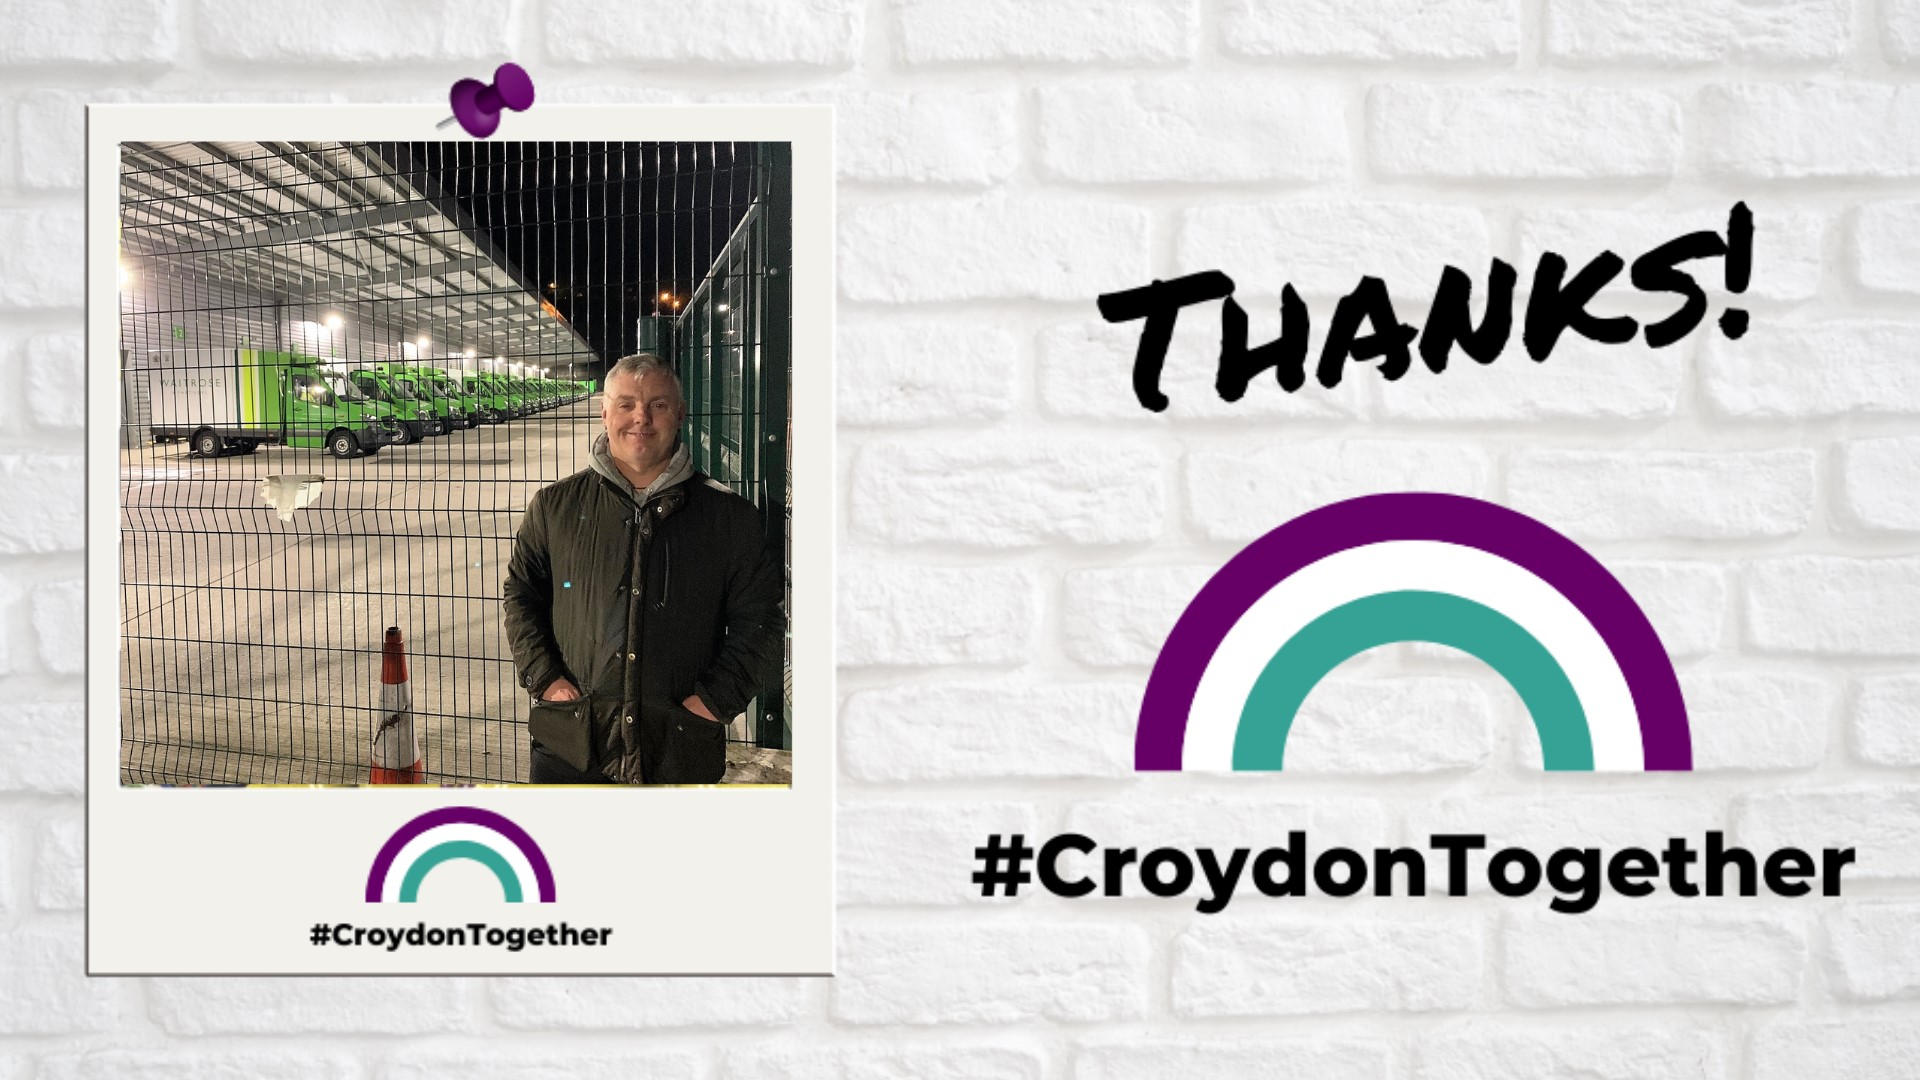 Croydon Works helps job-seeking residents as COVID-19 creates new roles